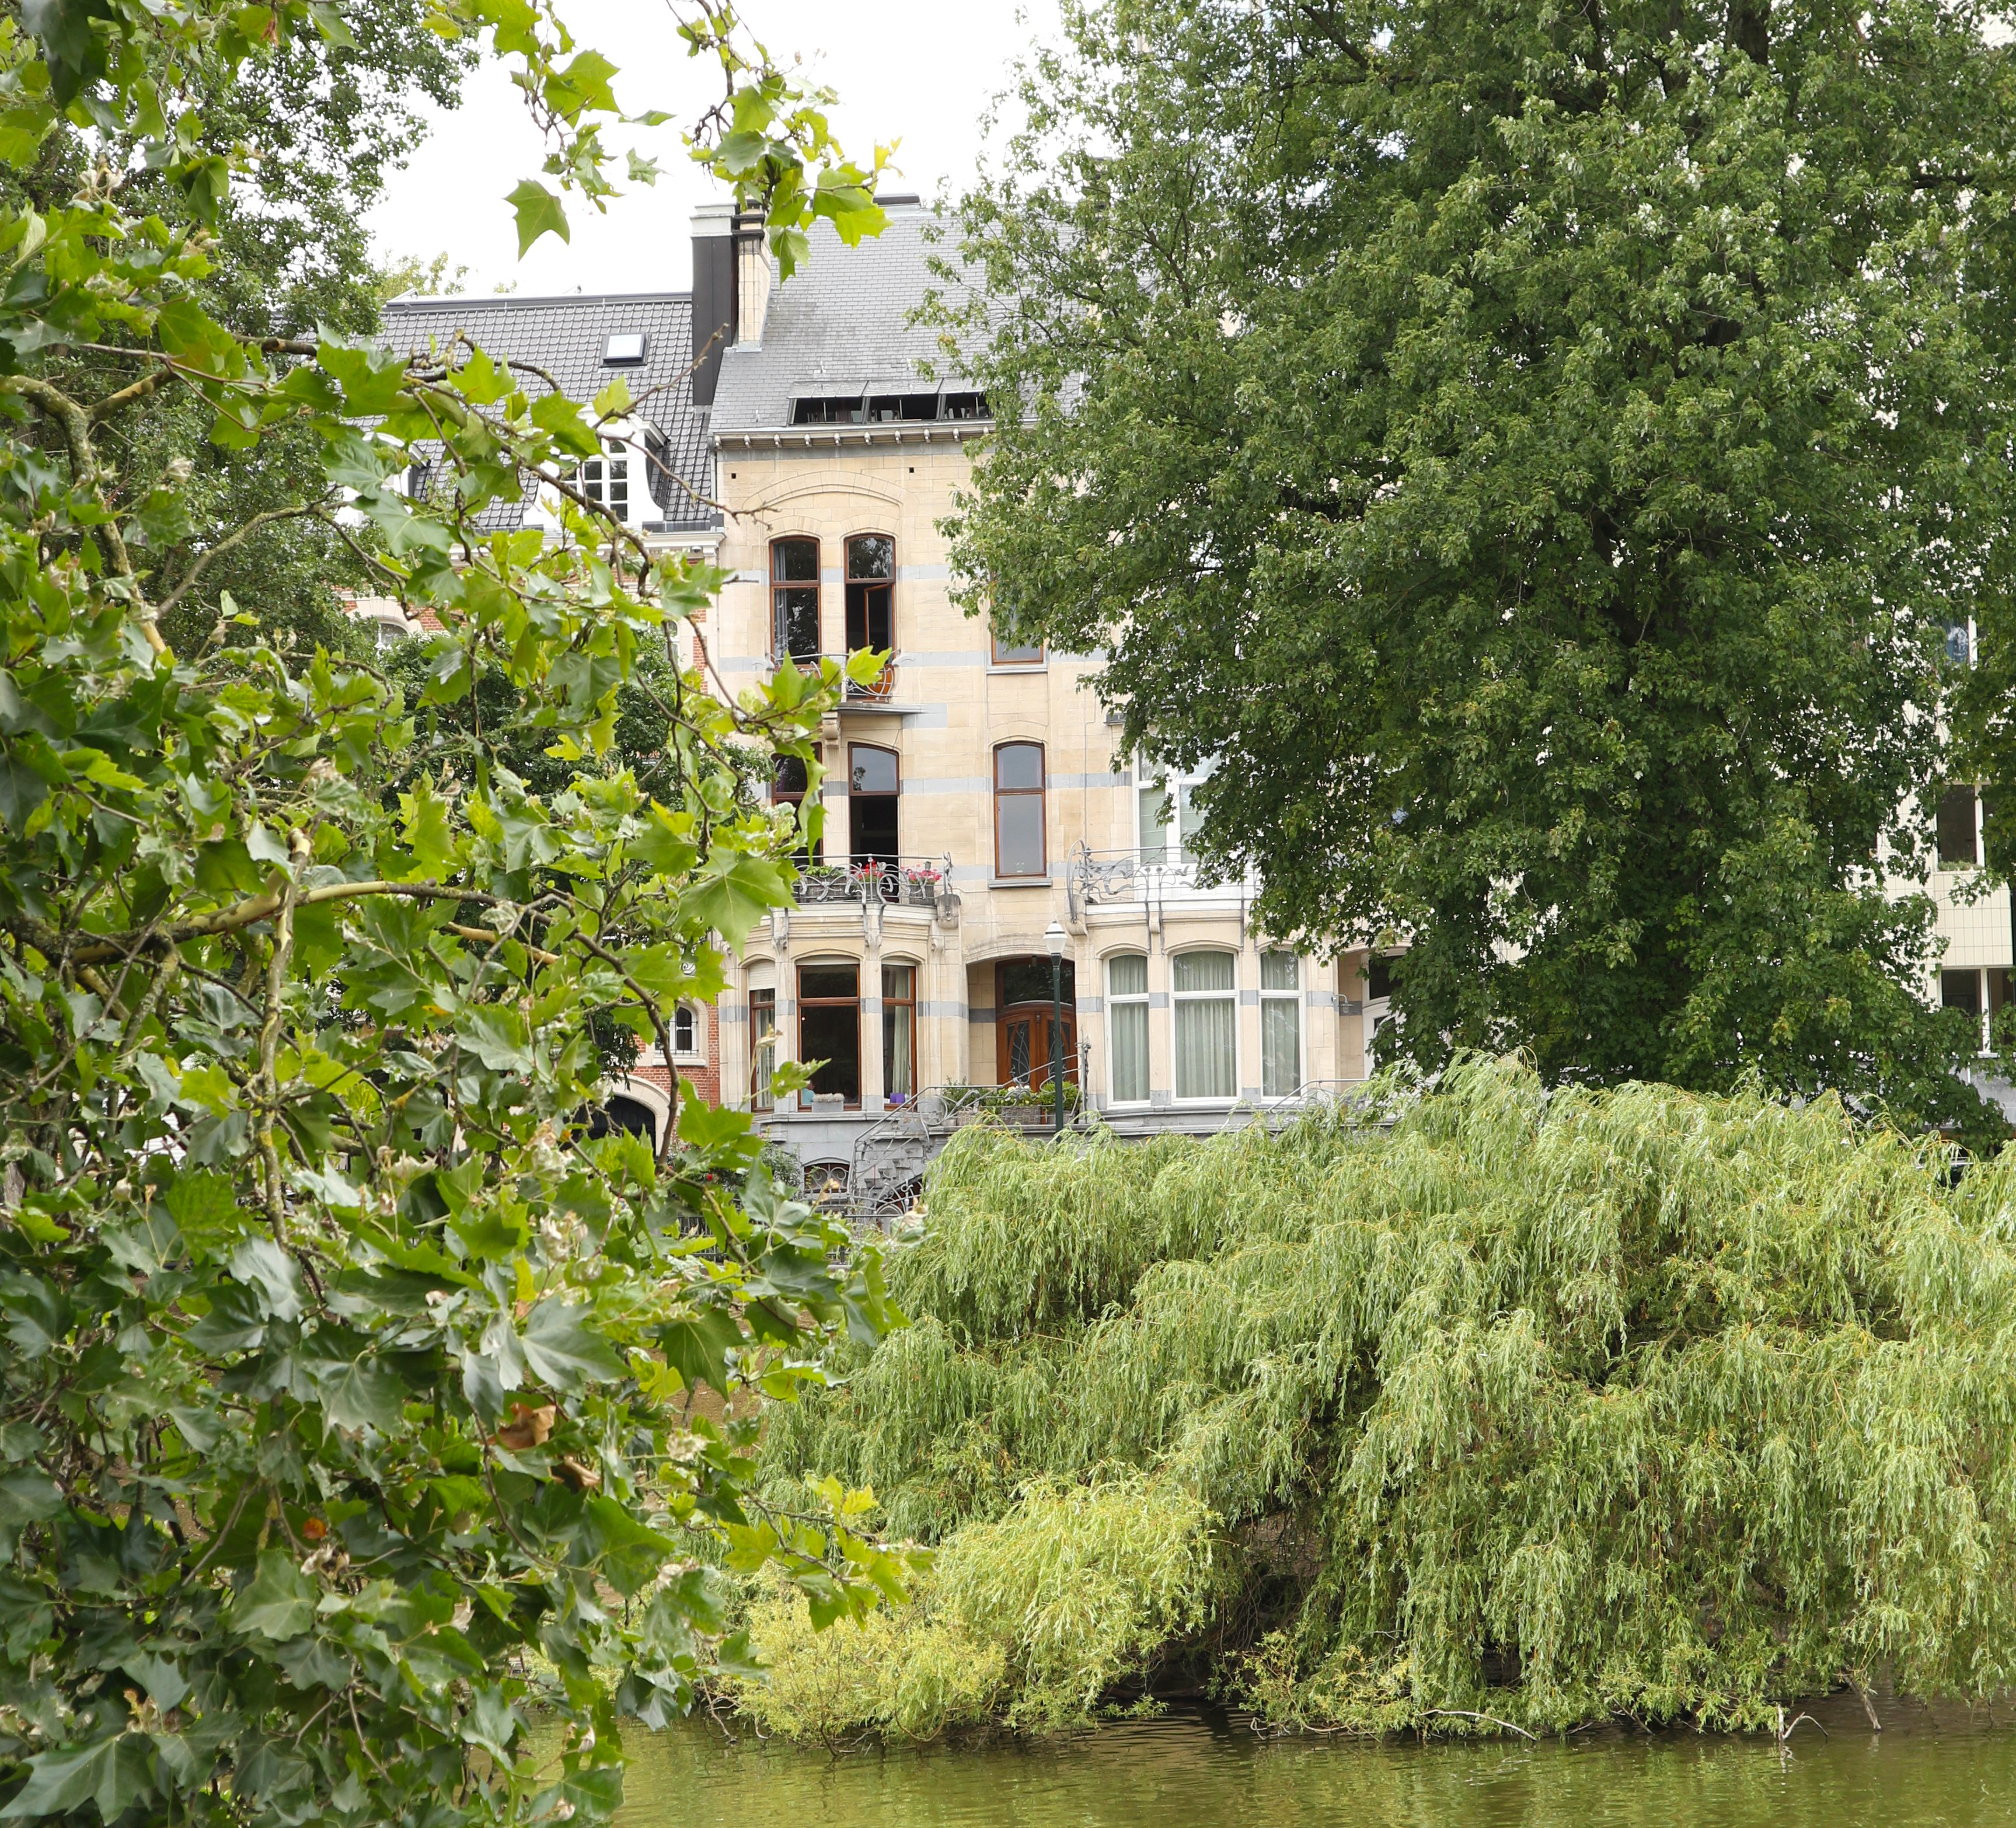 The Ixelles Ponds, from town house to apartment building